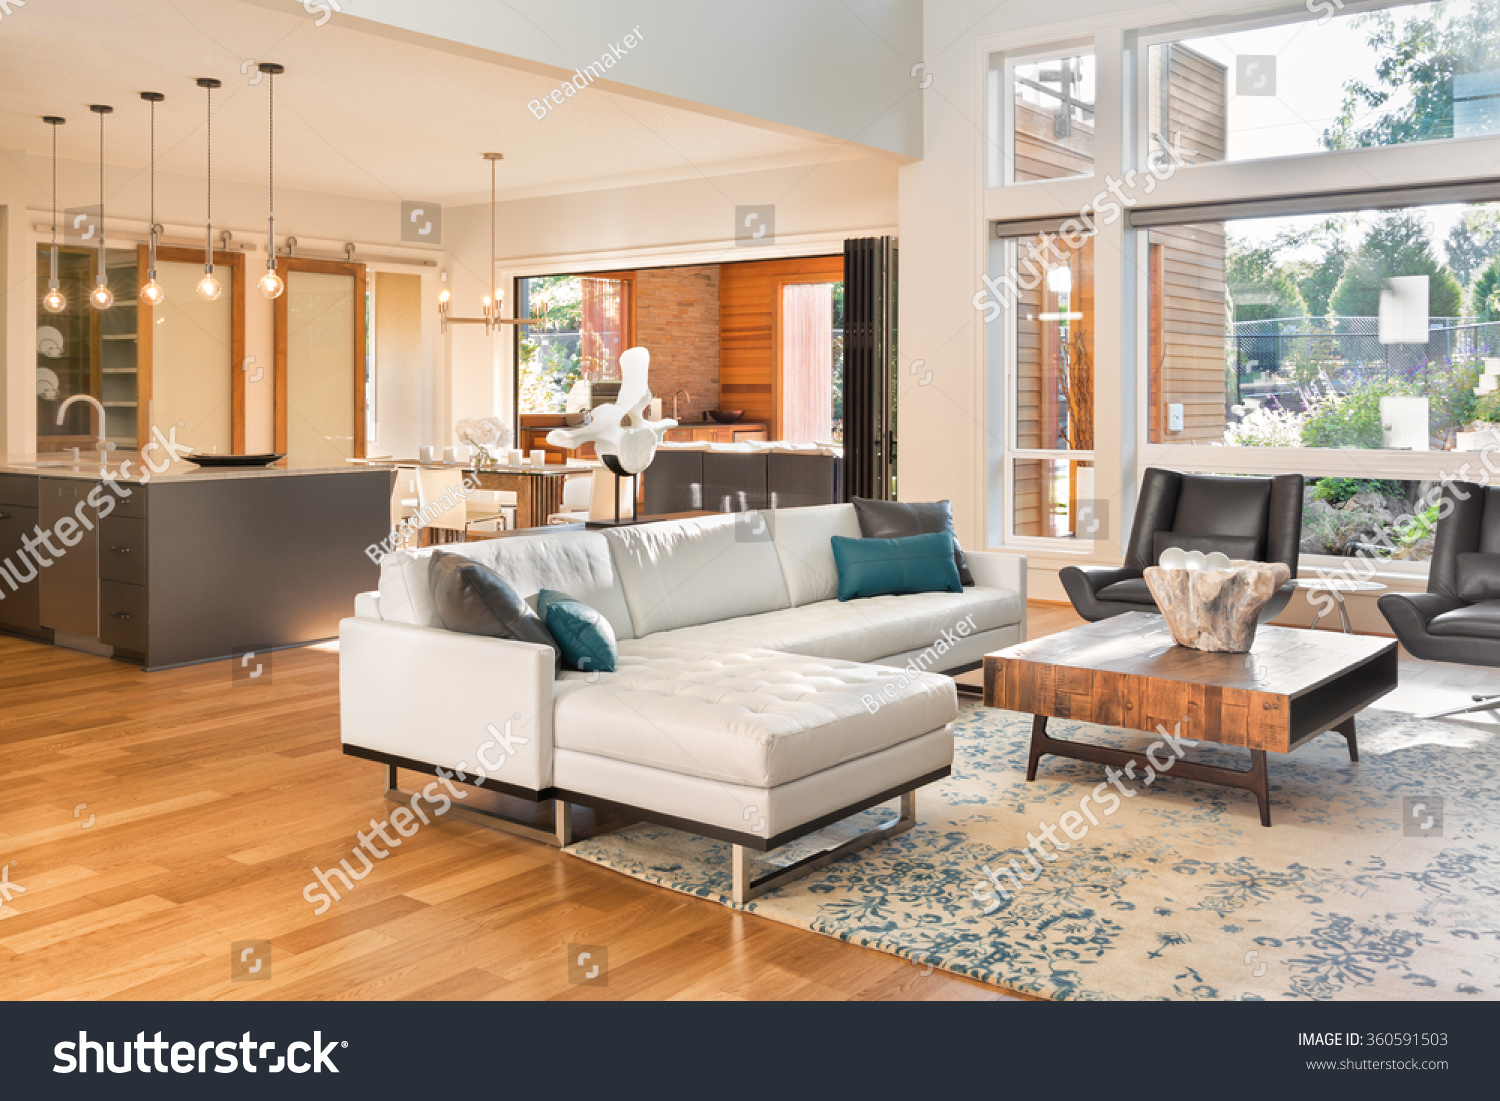 beautiful living room interior new luxury stock photo 360591503 shutterstock. Black Bedroom Furniture Sets. Home Design Ideas